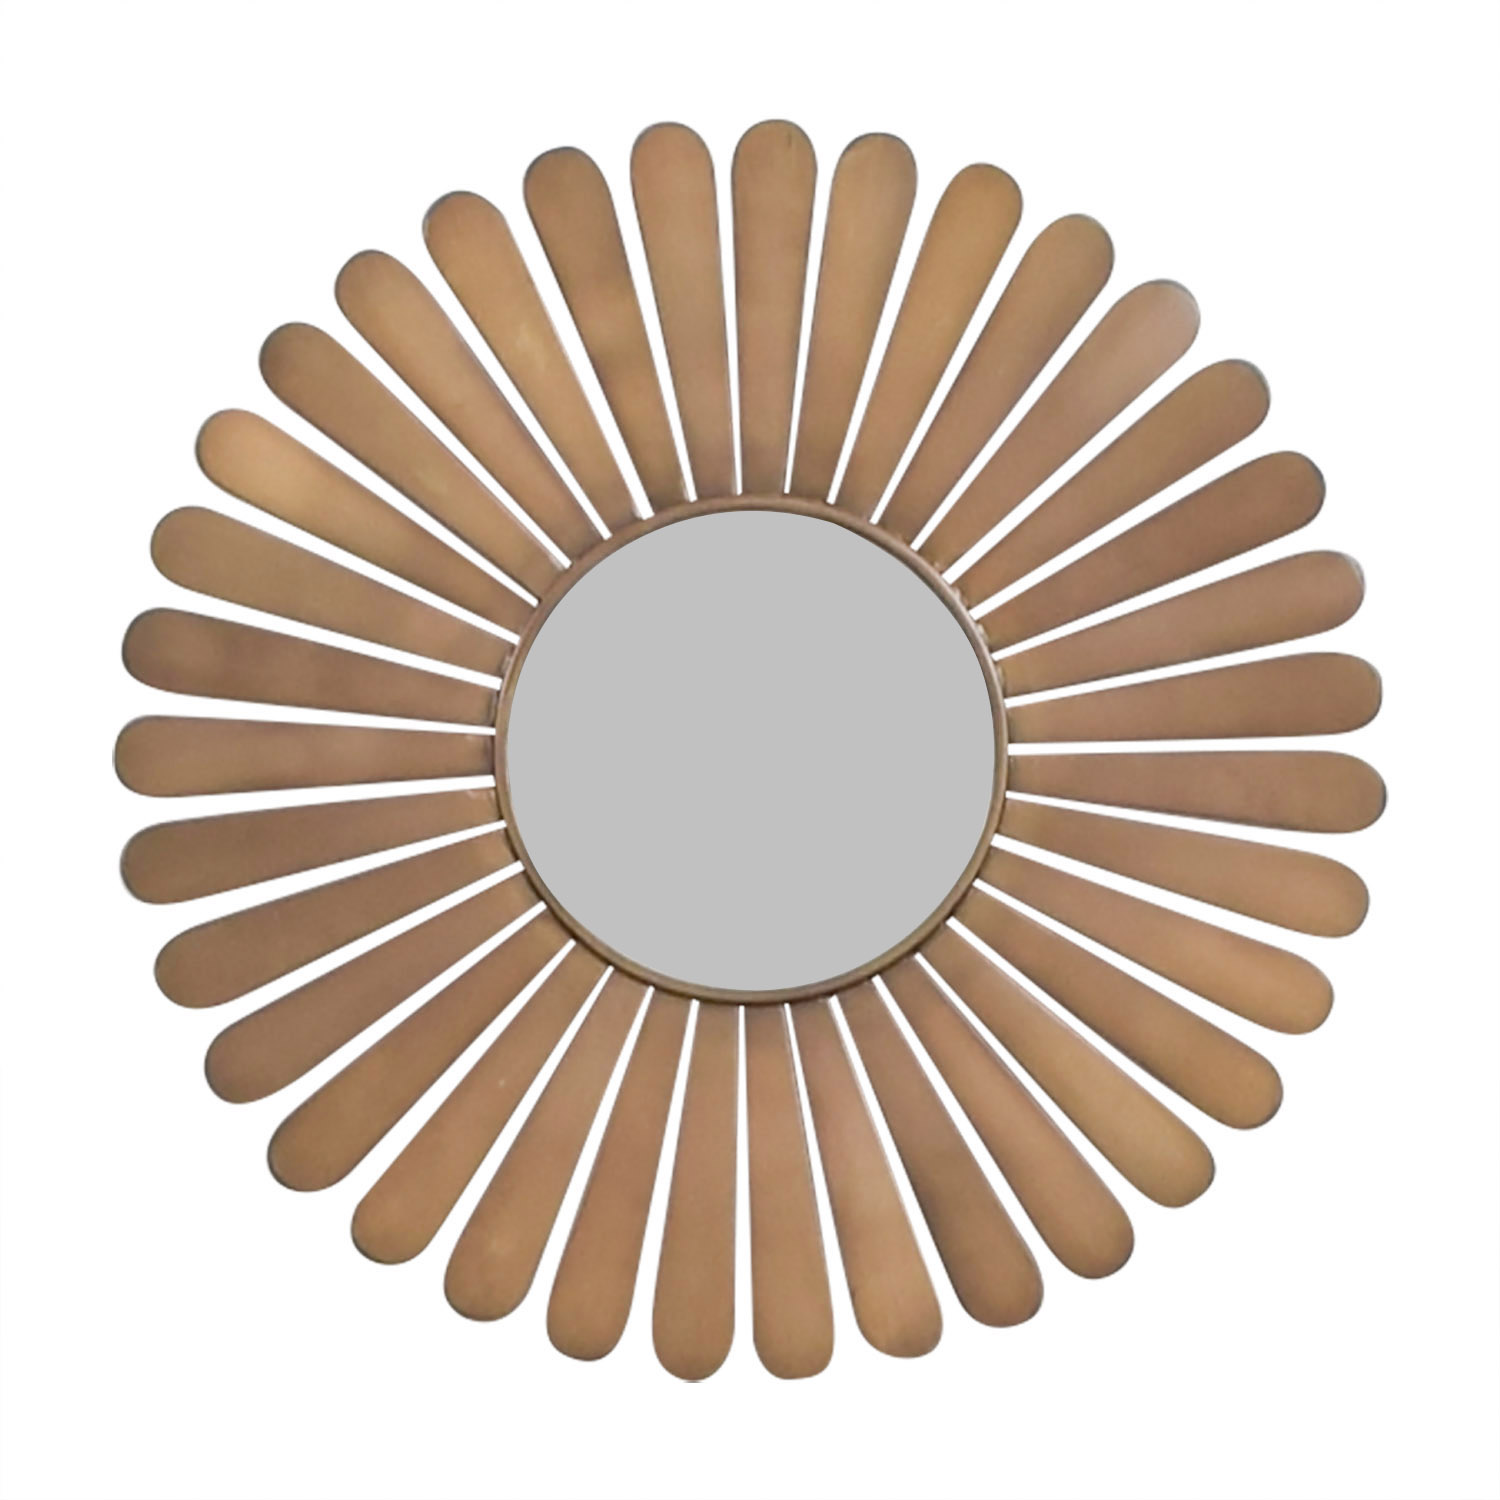 shop The Land of Nod The Land of Nod Sunburst Bronze Wall Mirror online